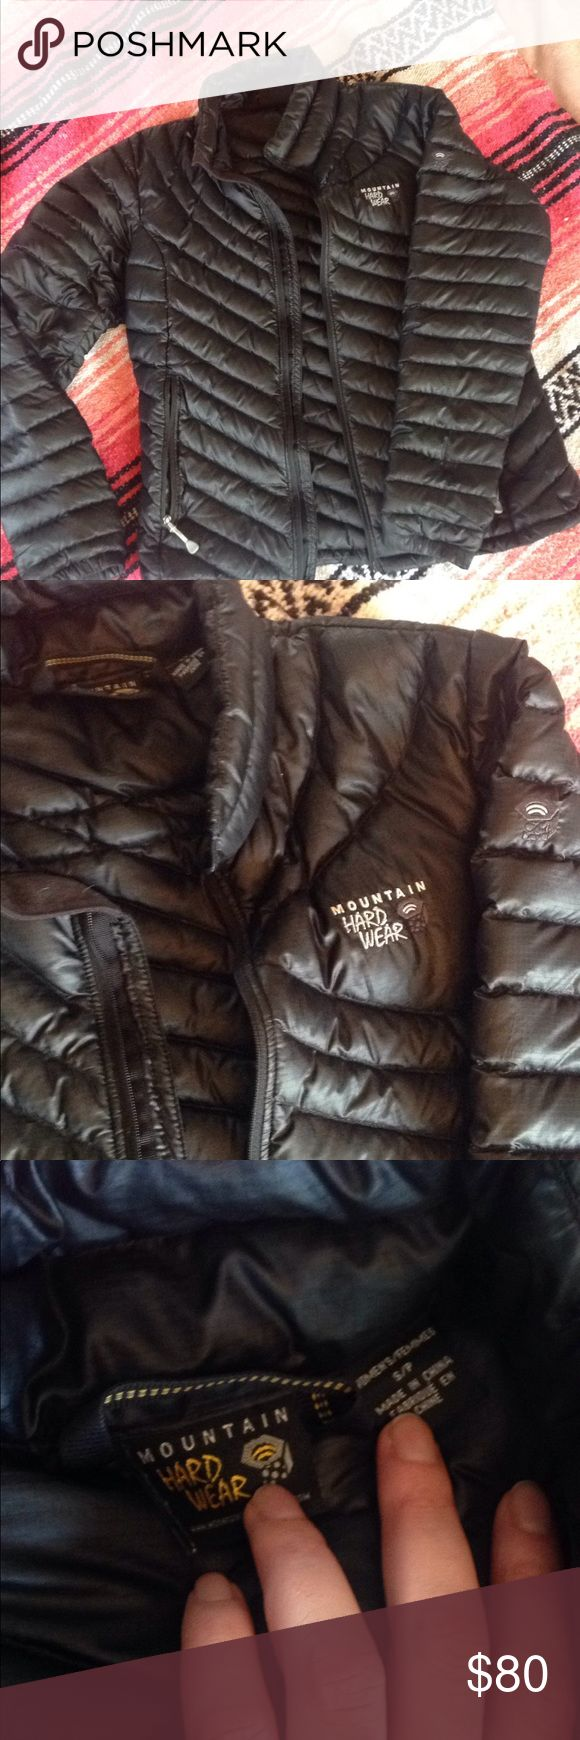 Mountain Hardwear down jacket small Excellent condition size small Mountain Hardwear down jacket. Very warm and perfect to wear alone or for layering. Mountain Hardwear Jackets & Coats